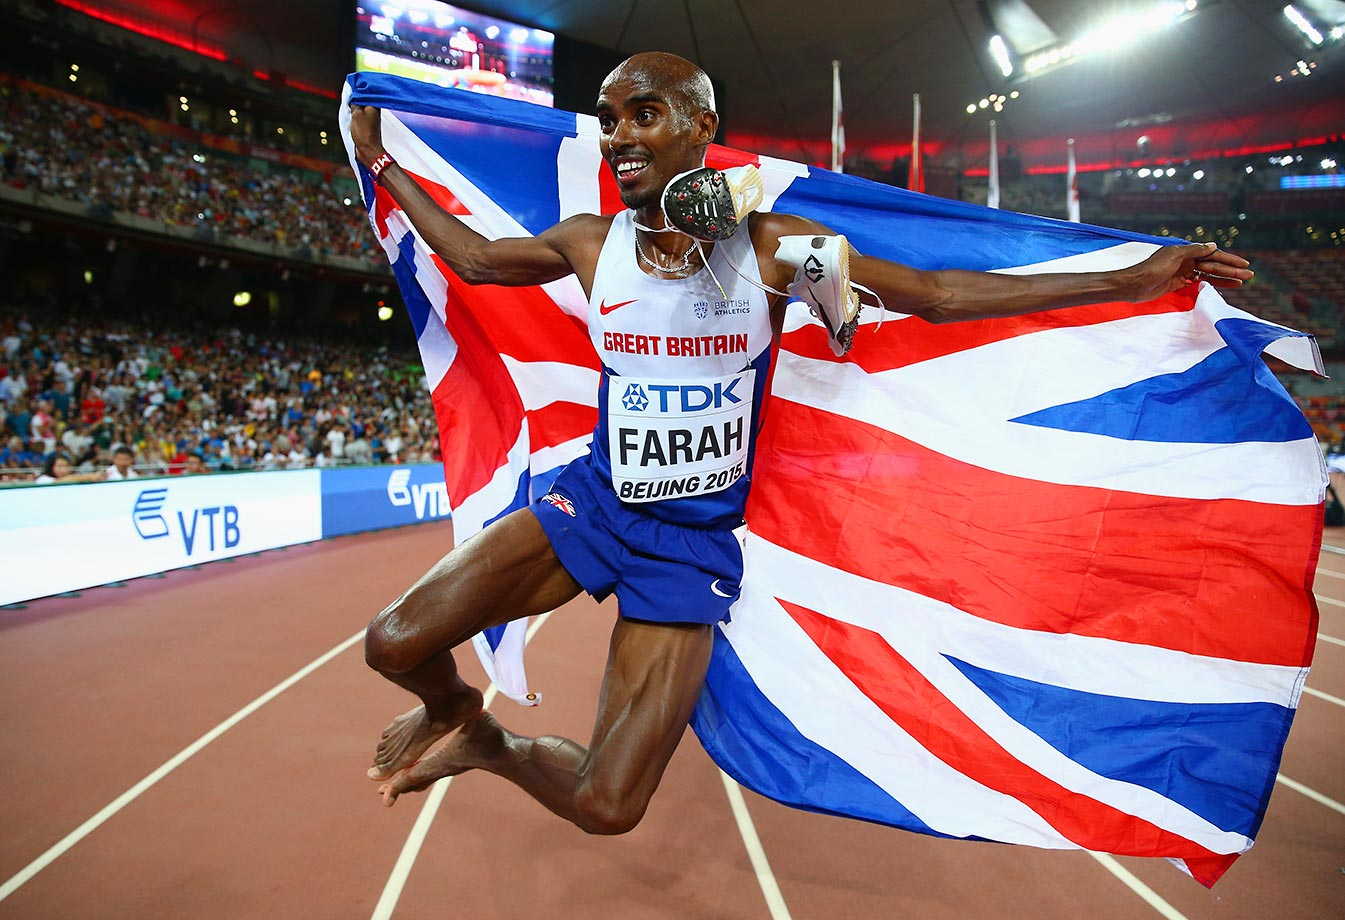 Mohamed Farah of Great Britain celebrates after winning the gold in the 5000m final at the IAAF World Athletics Championships.